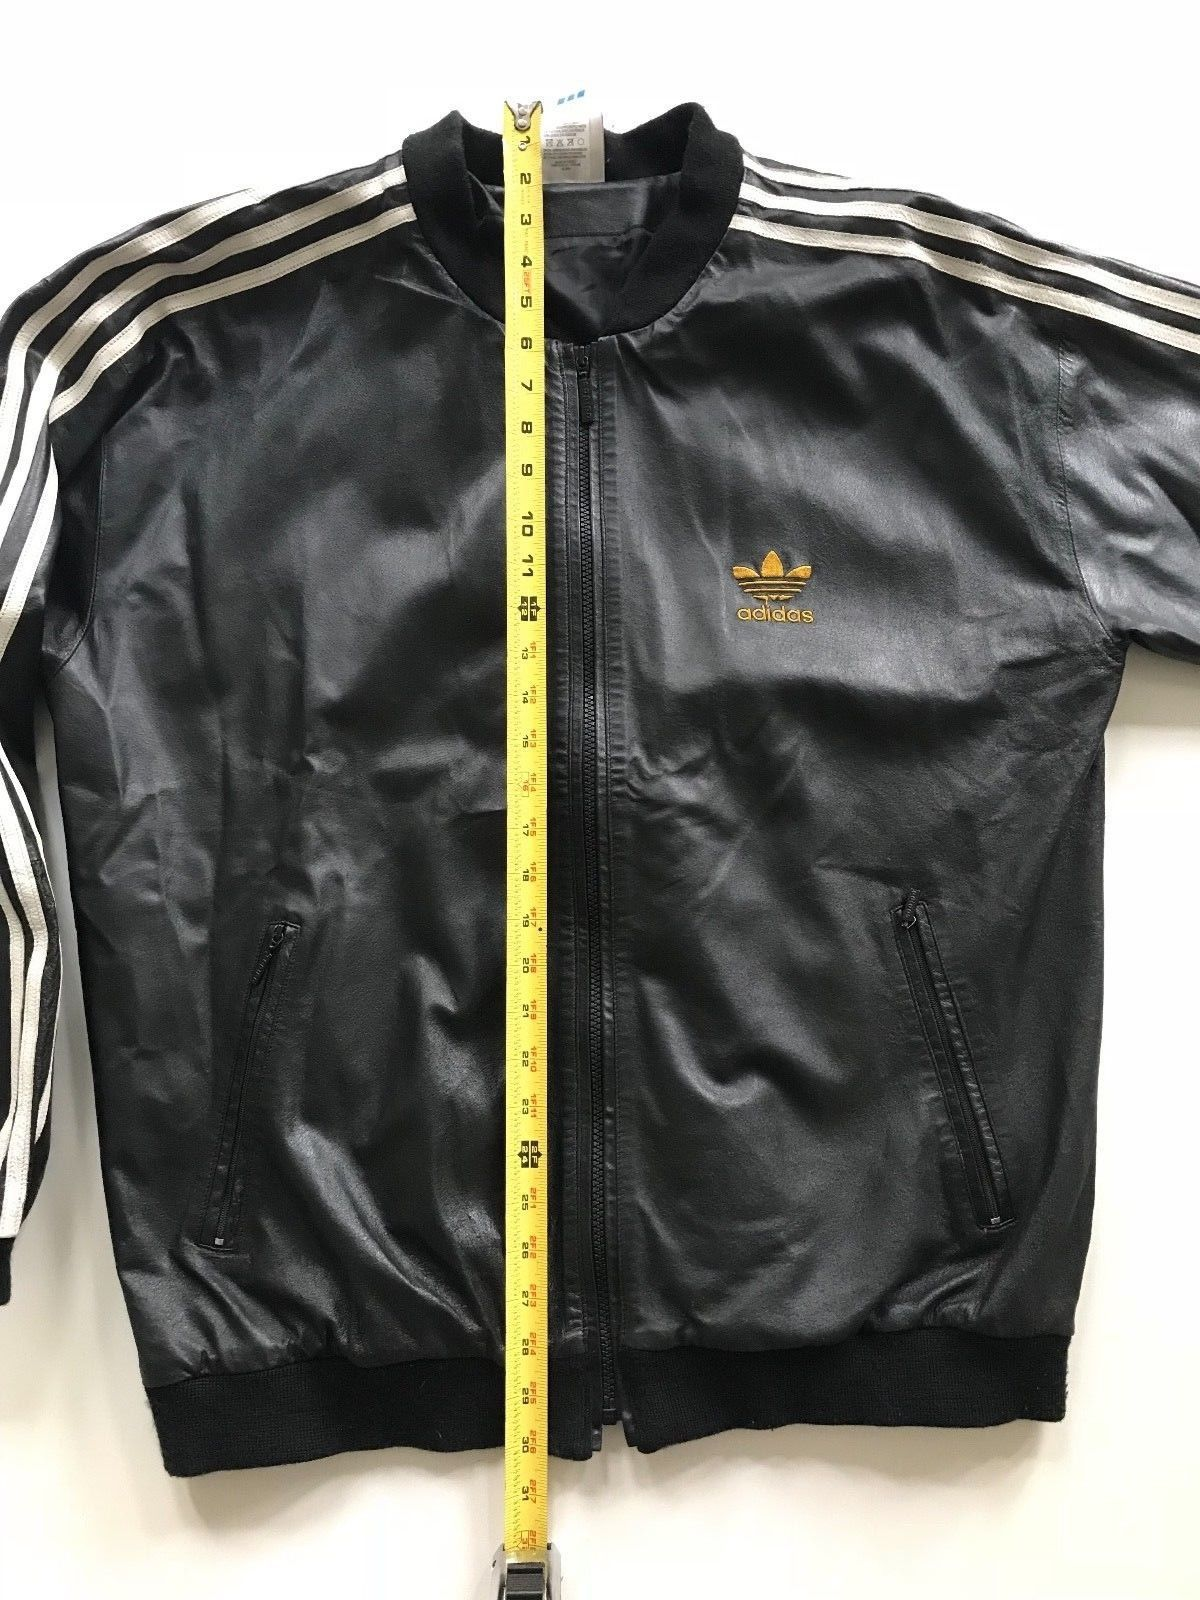 9e8b17cdc5fc ADIDAS MEN S SUPERSTAR LIMITED EDITION RUN DMC LEATHER TRACK SUIT (Size  M)